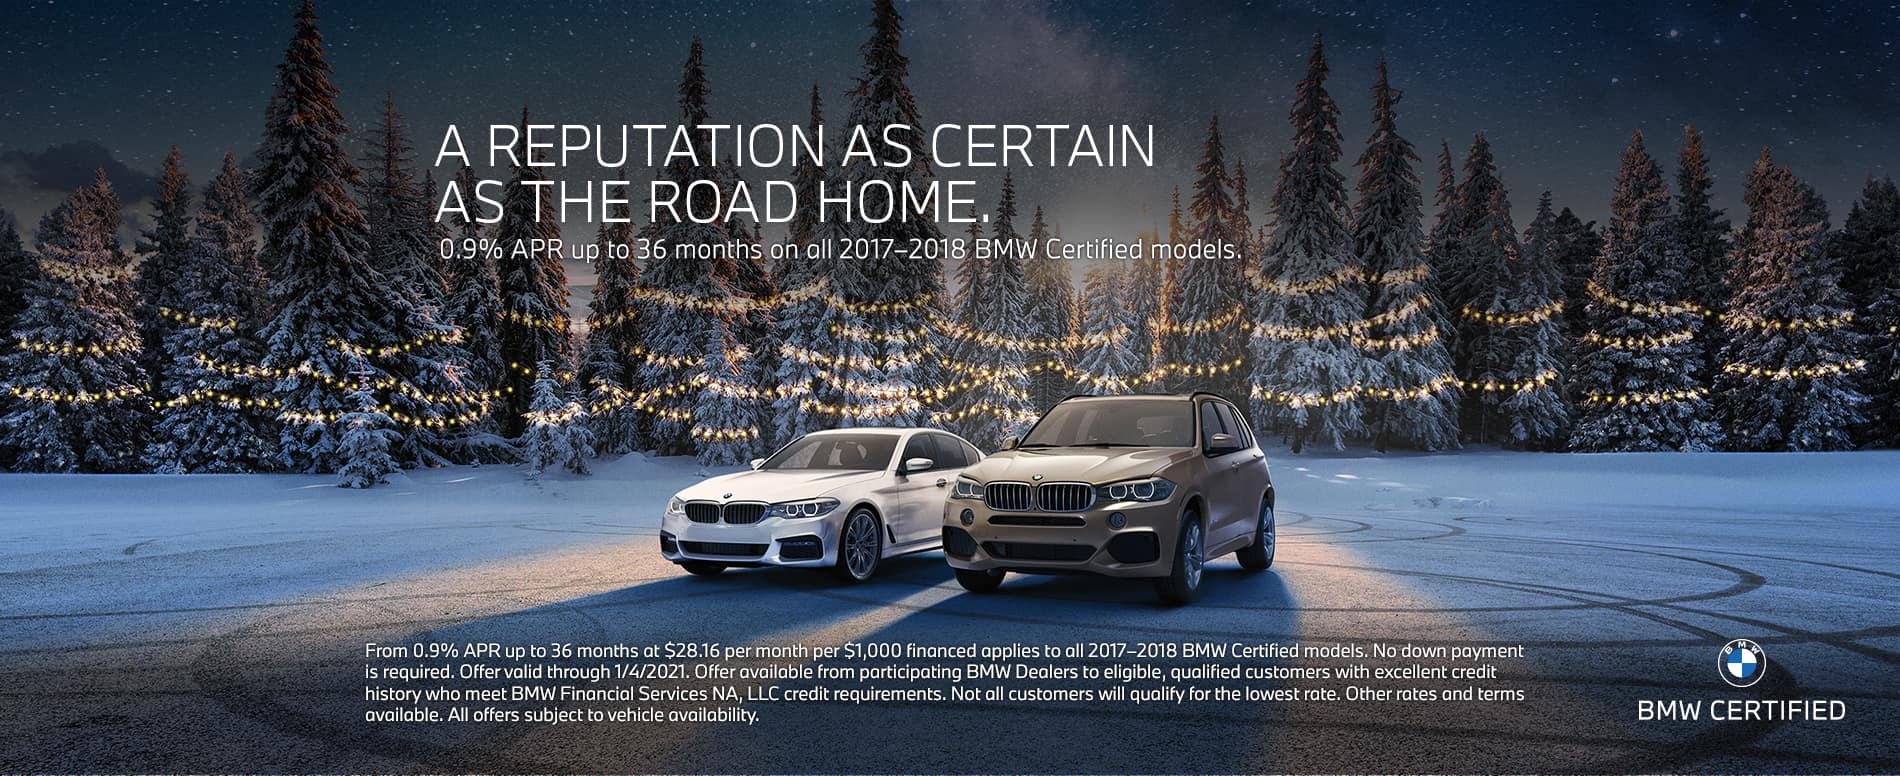 BMW CPO vehicles in front of a forest in winter